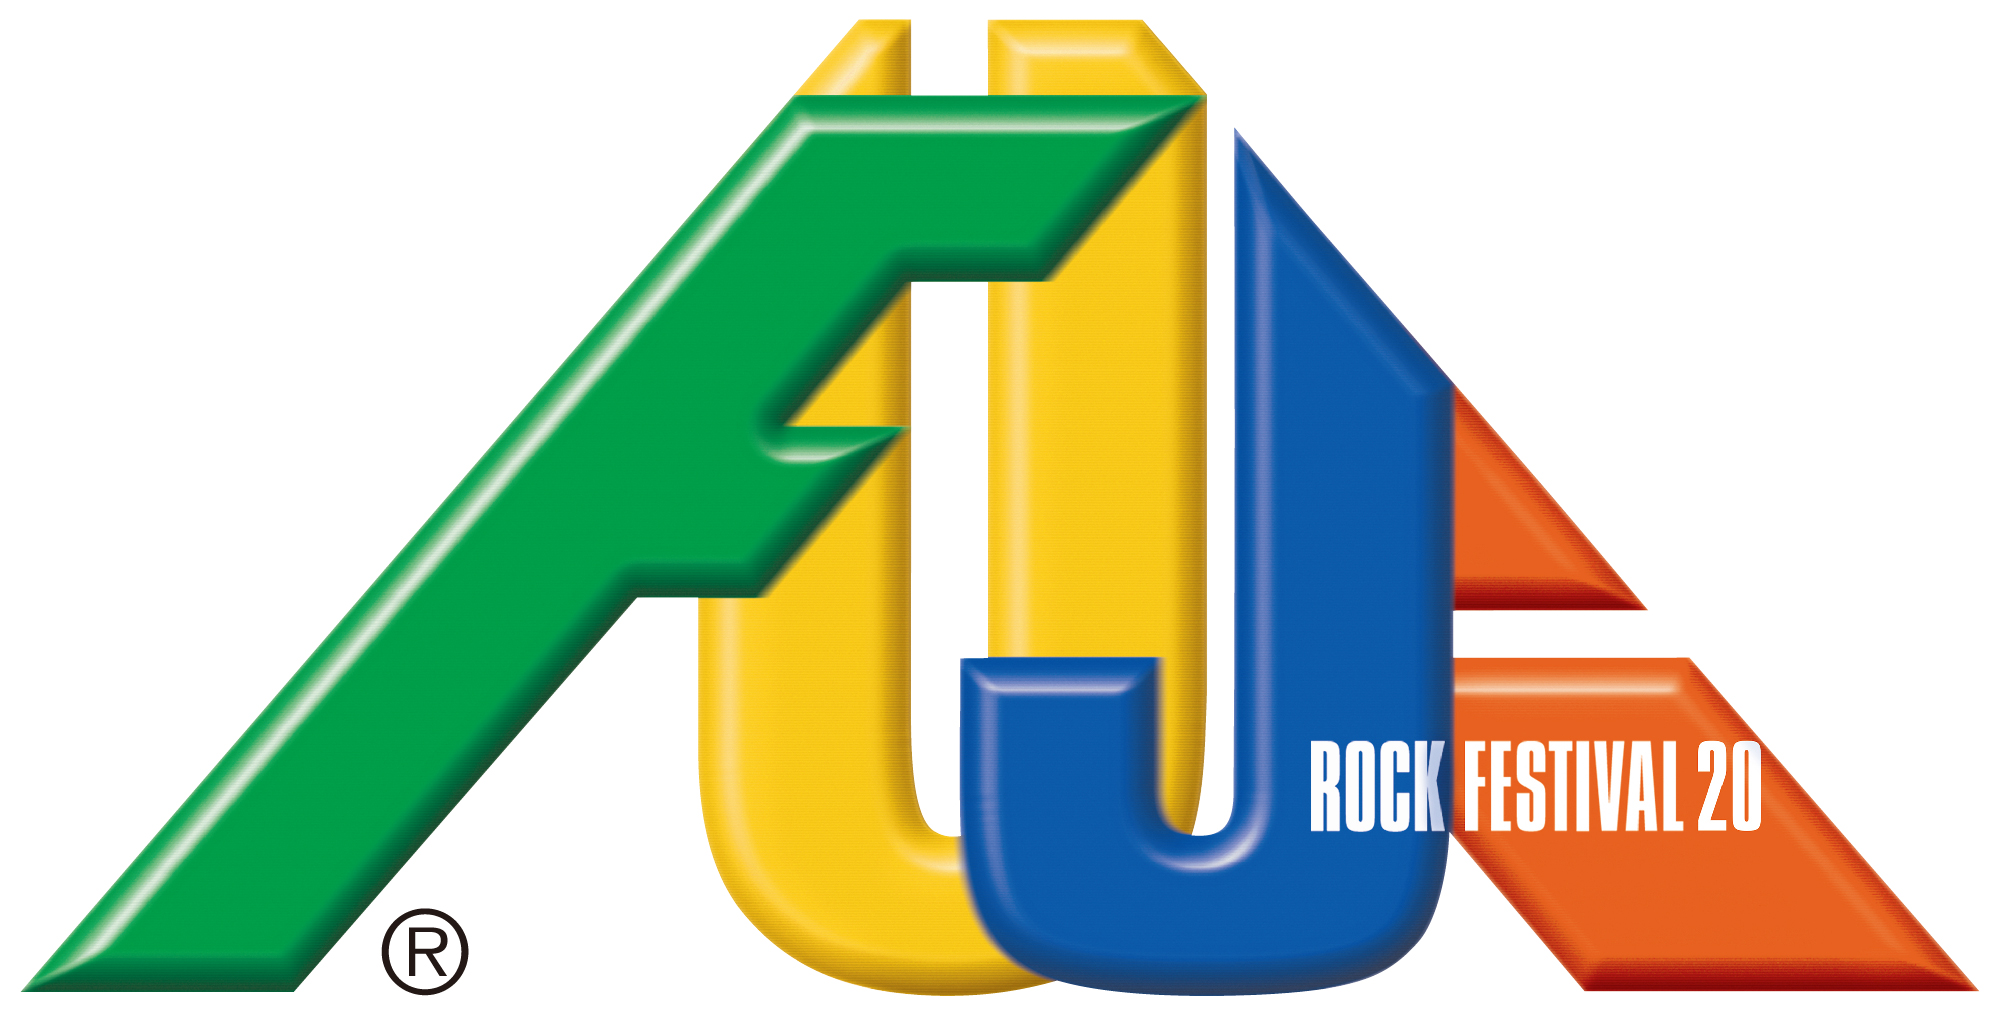 FRF20_Visual_logo.jpg